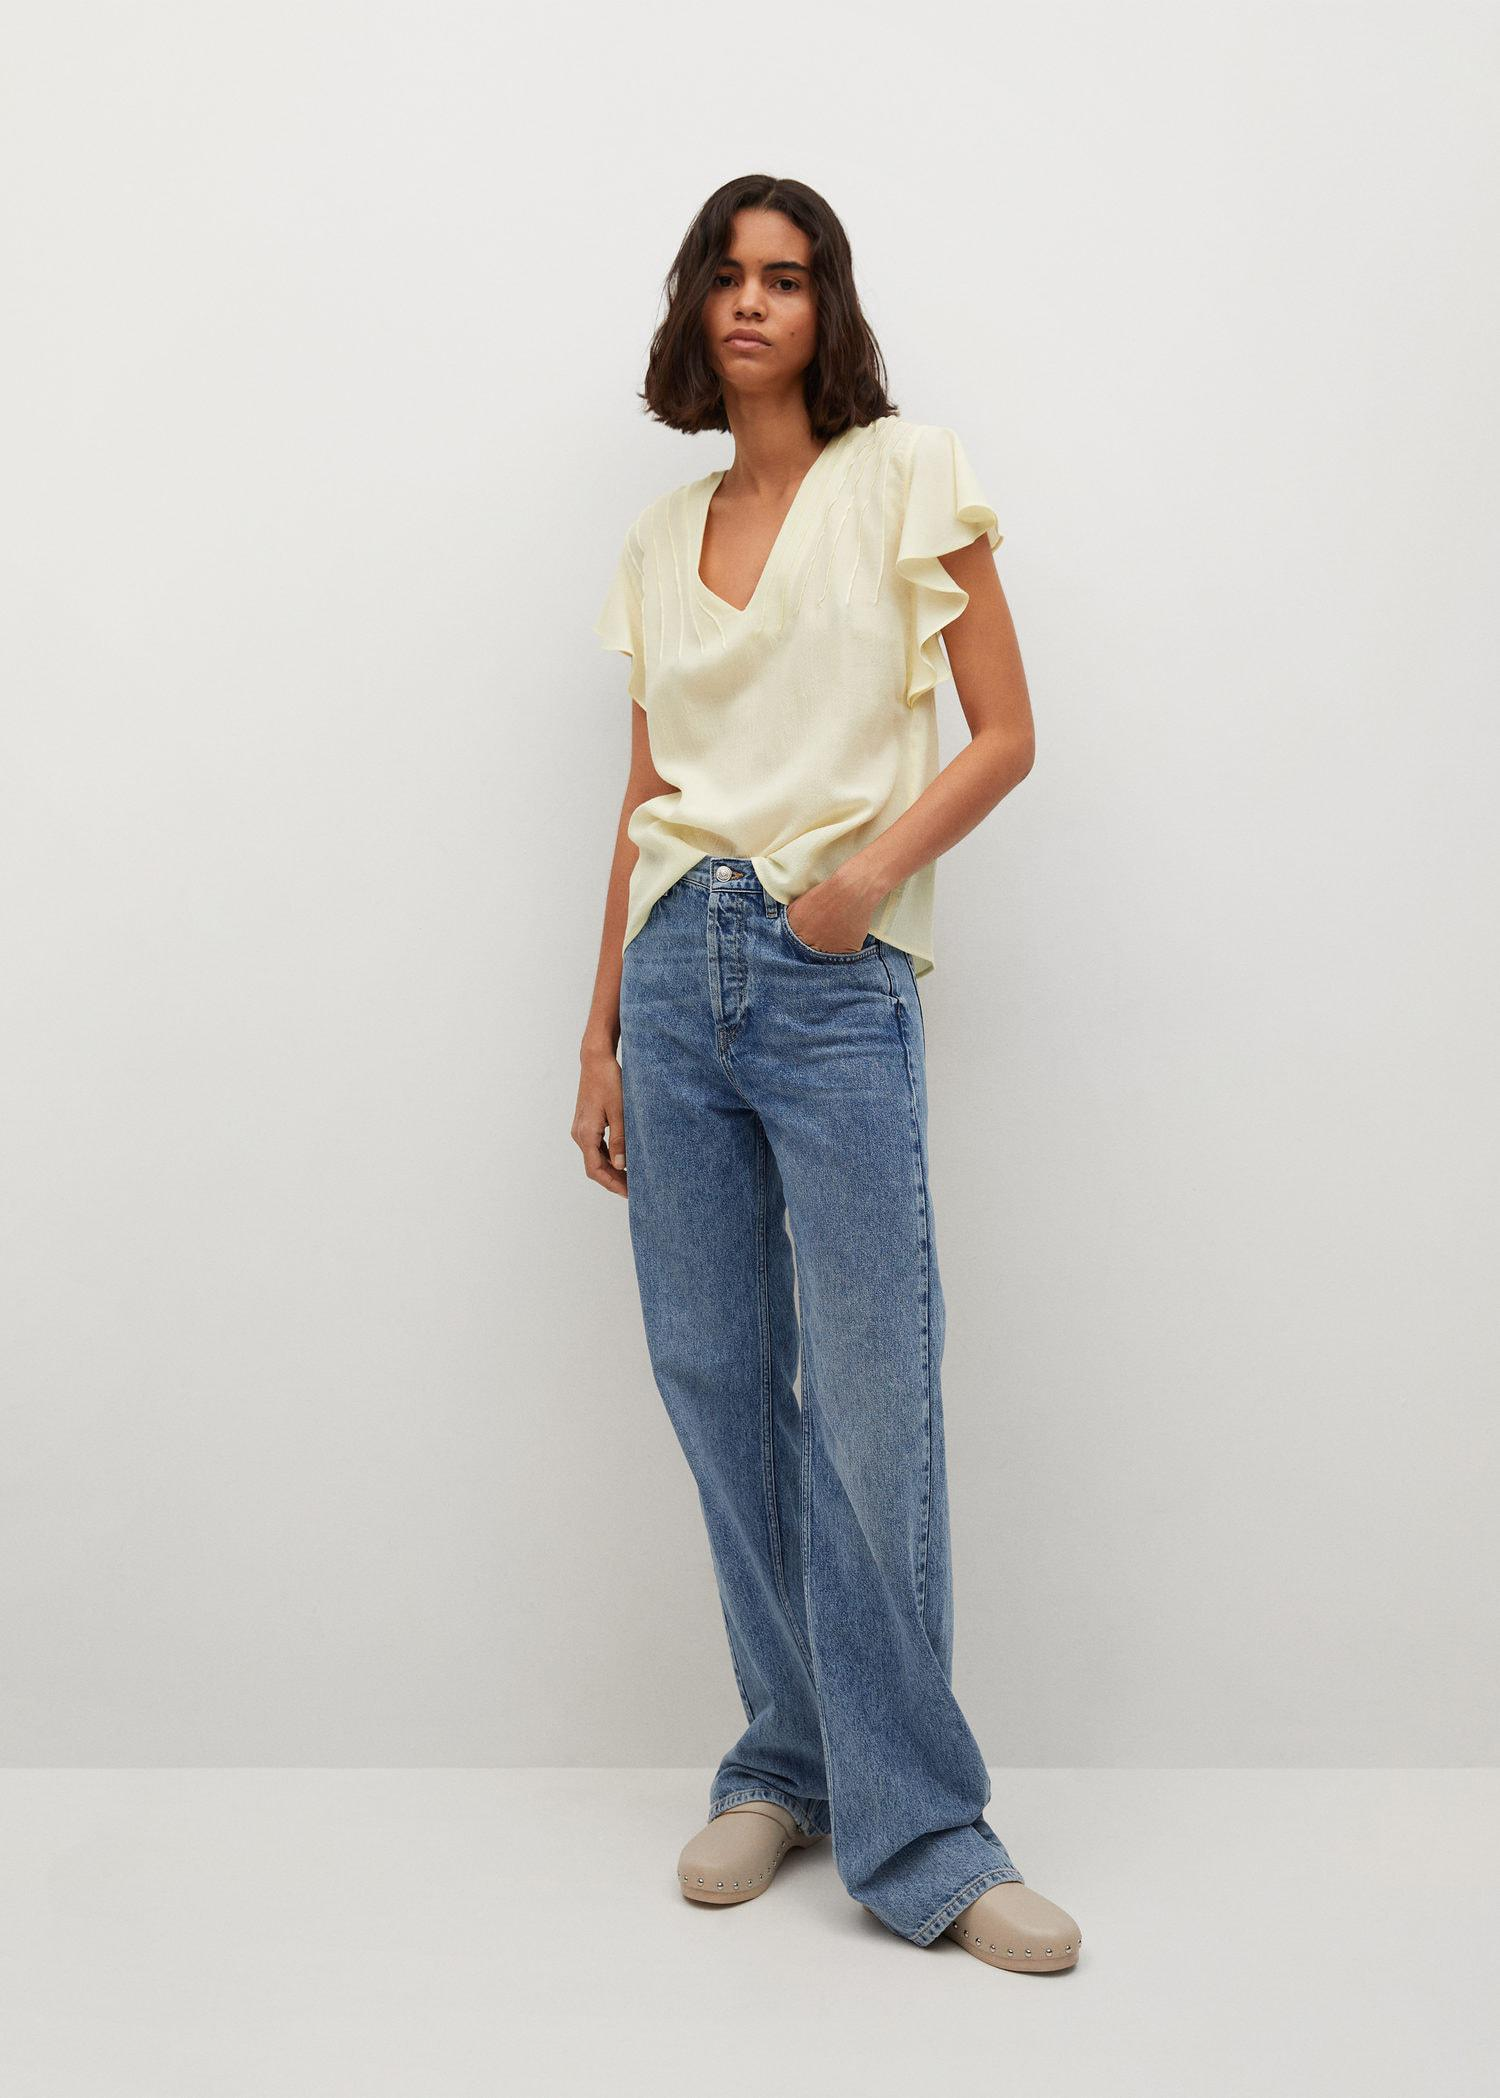 Bow textured blouse 1